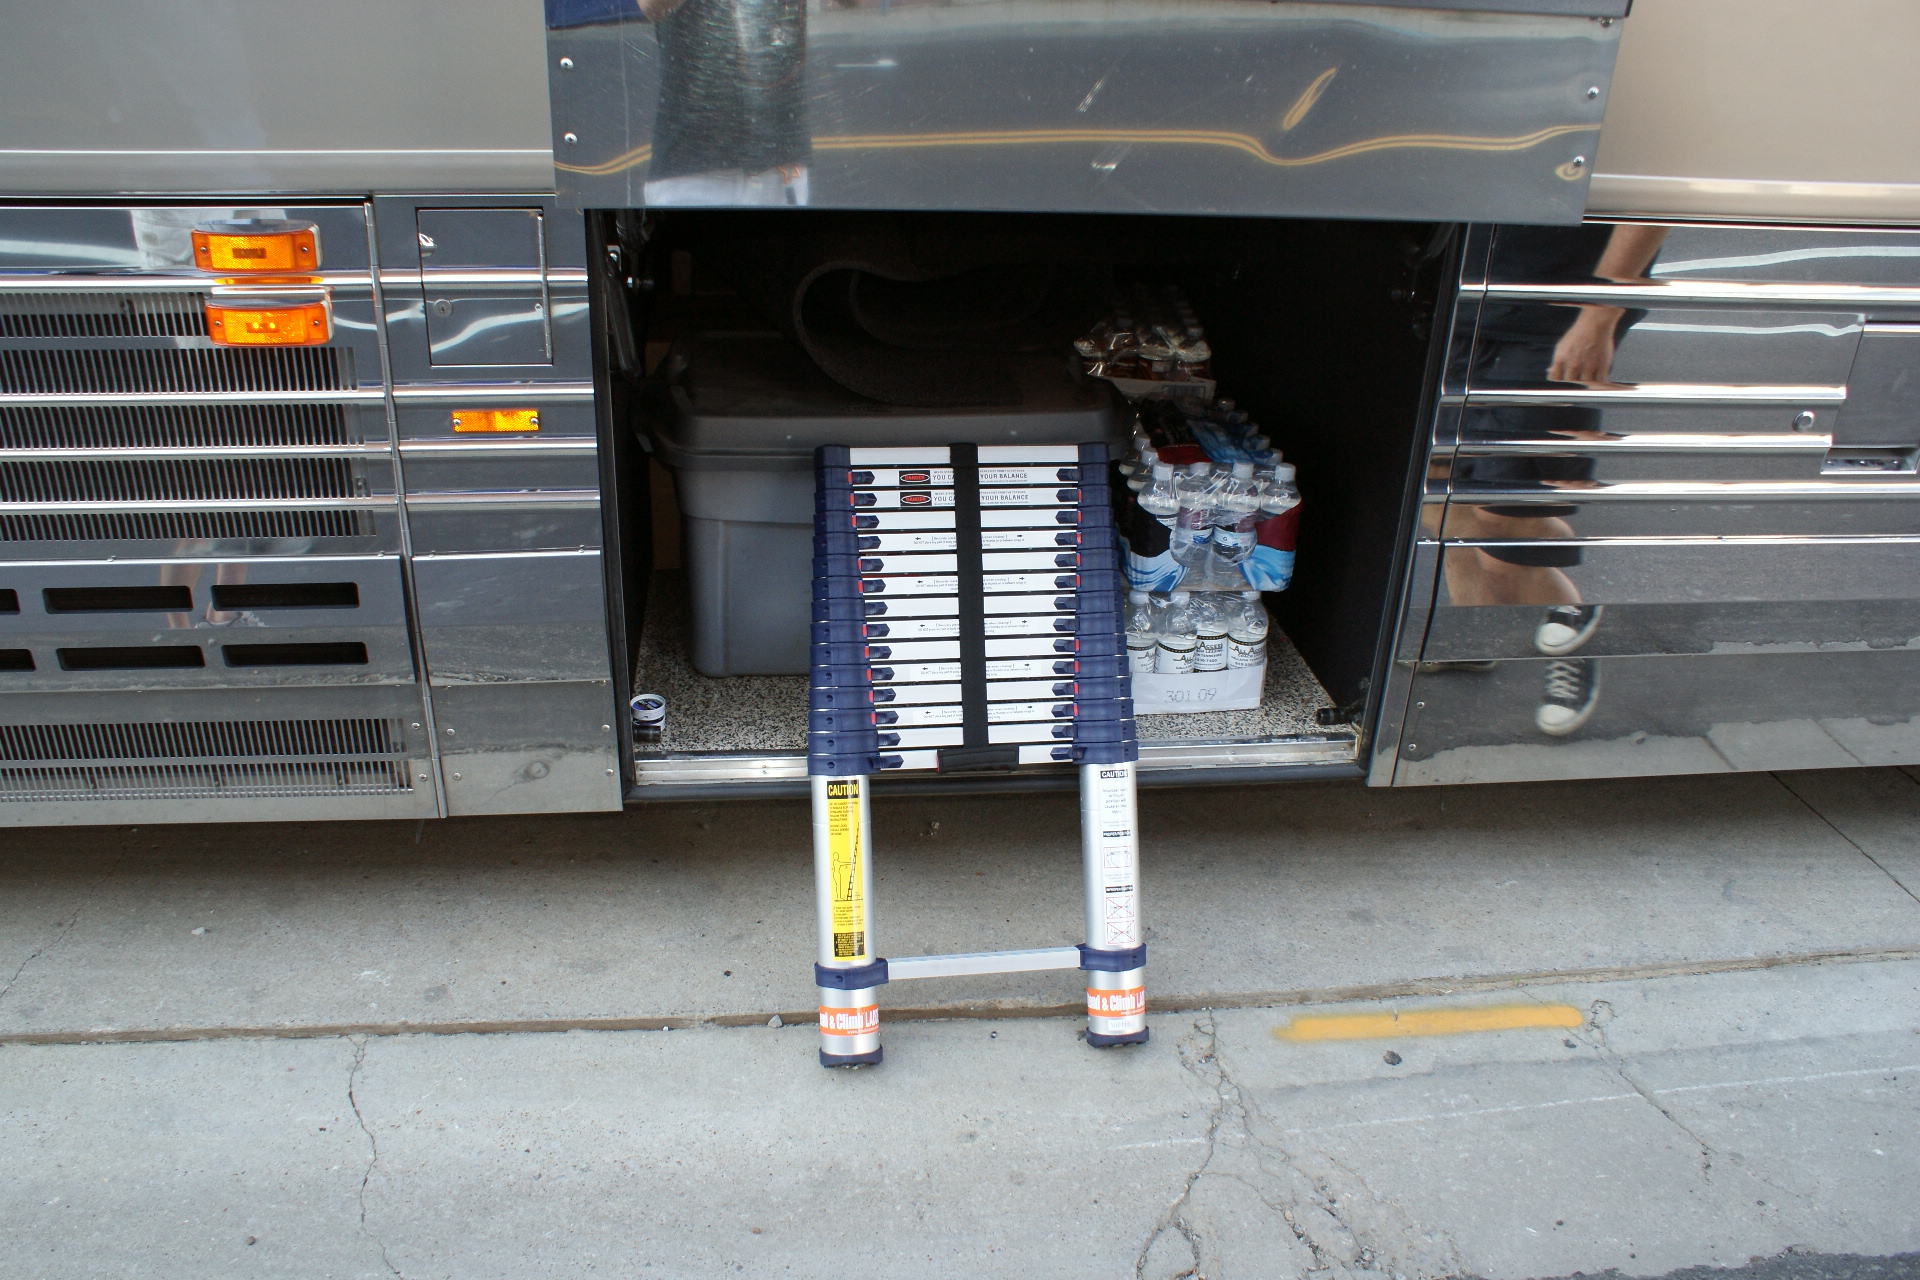 Telescoping ladders easily store in the baggage compartments of this tour bus.